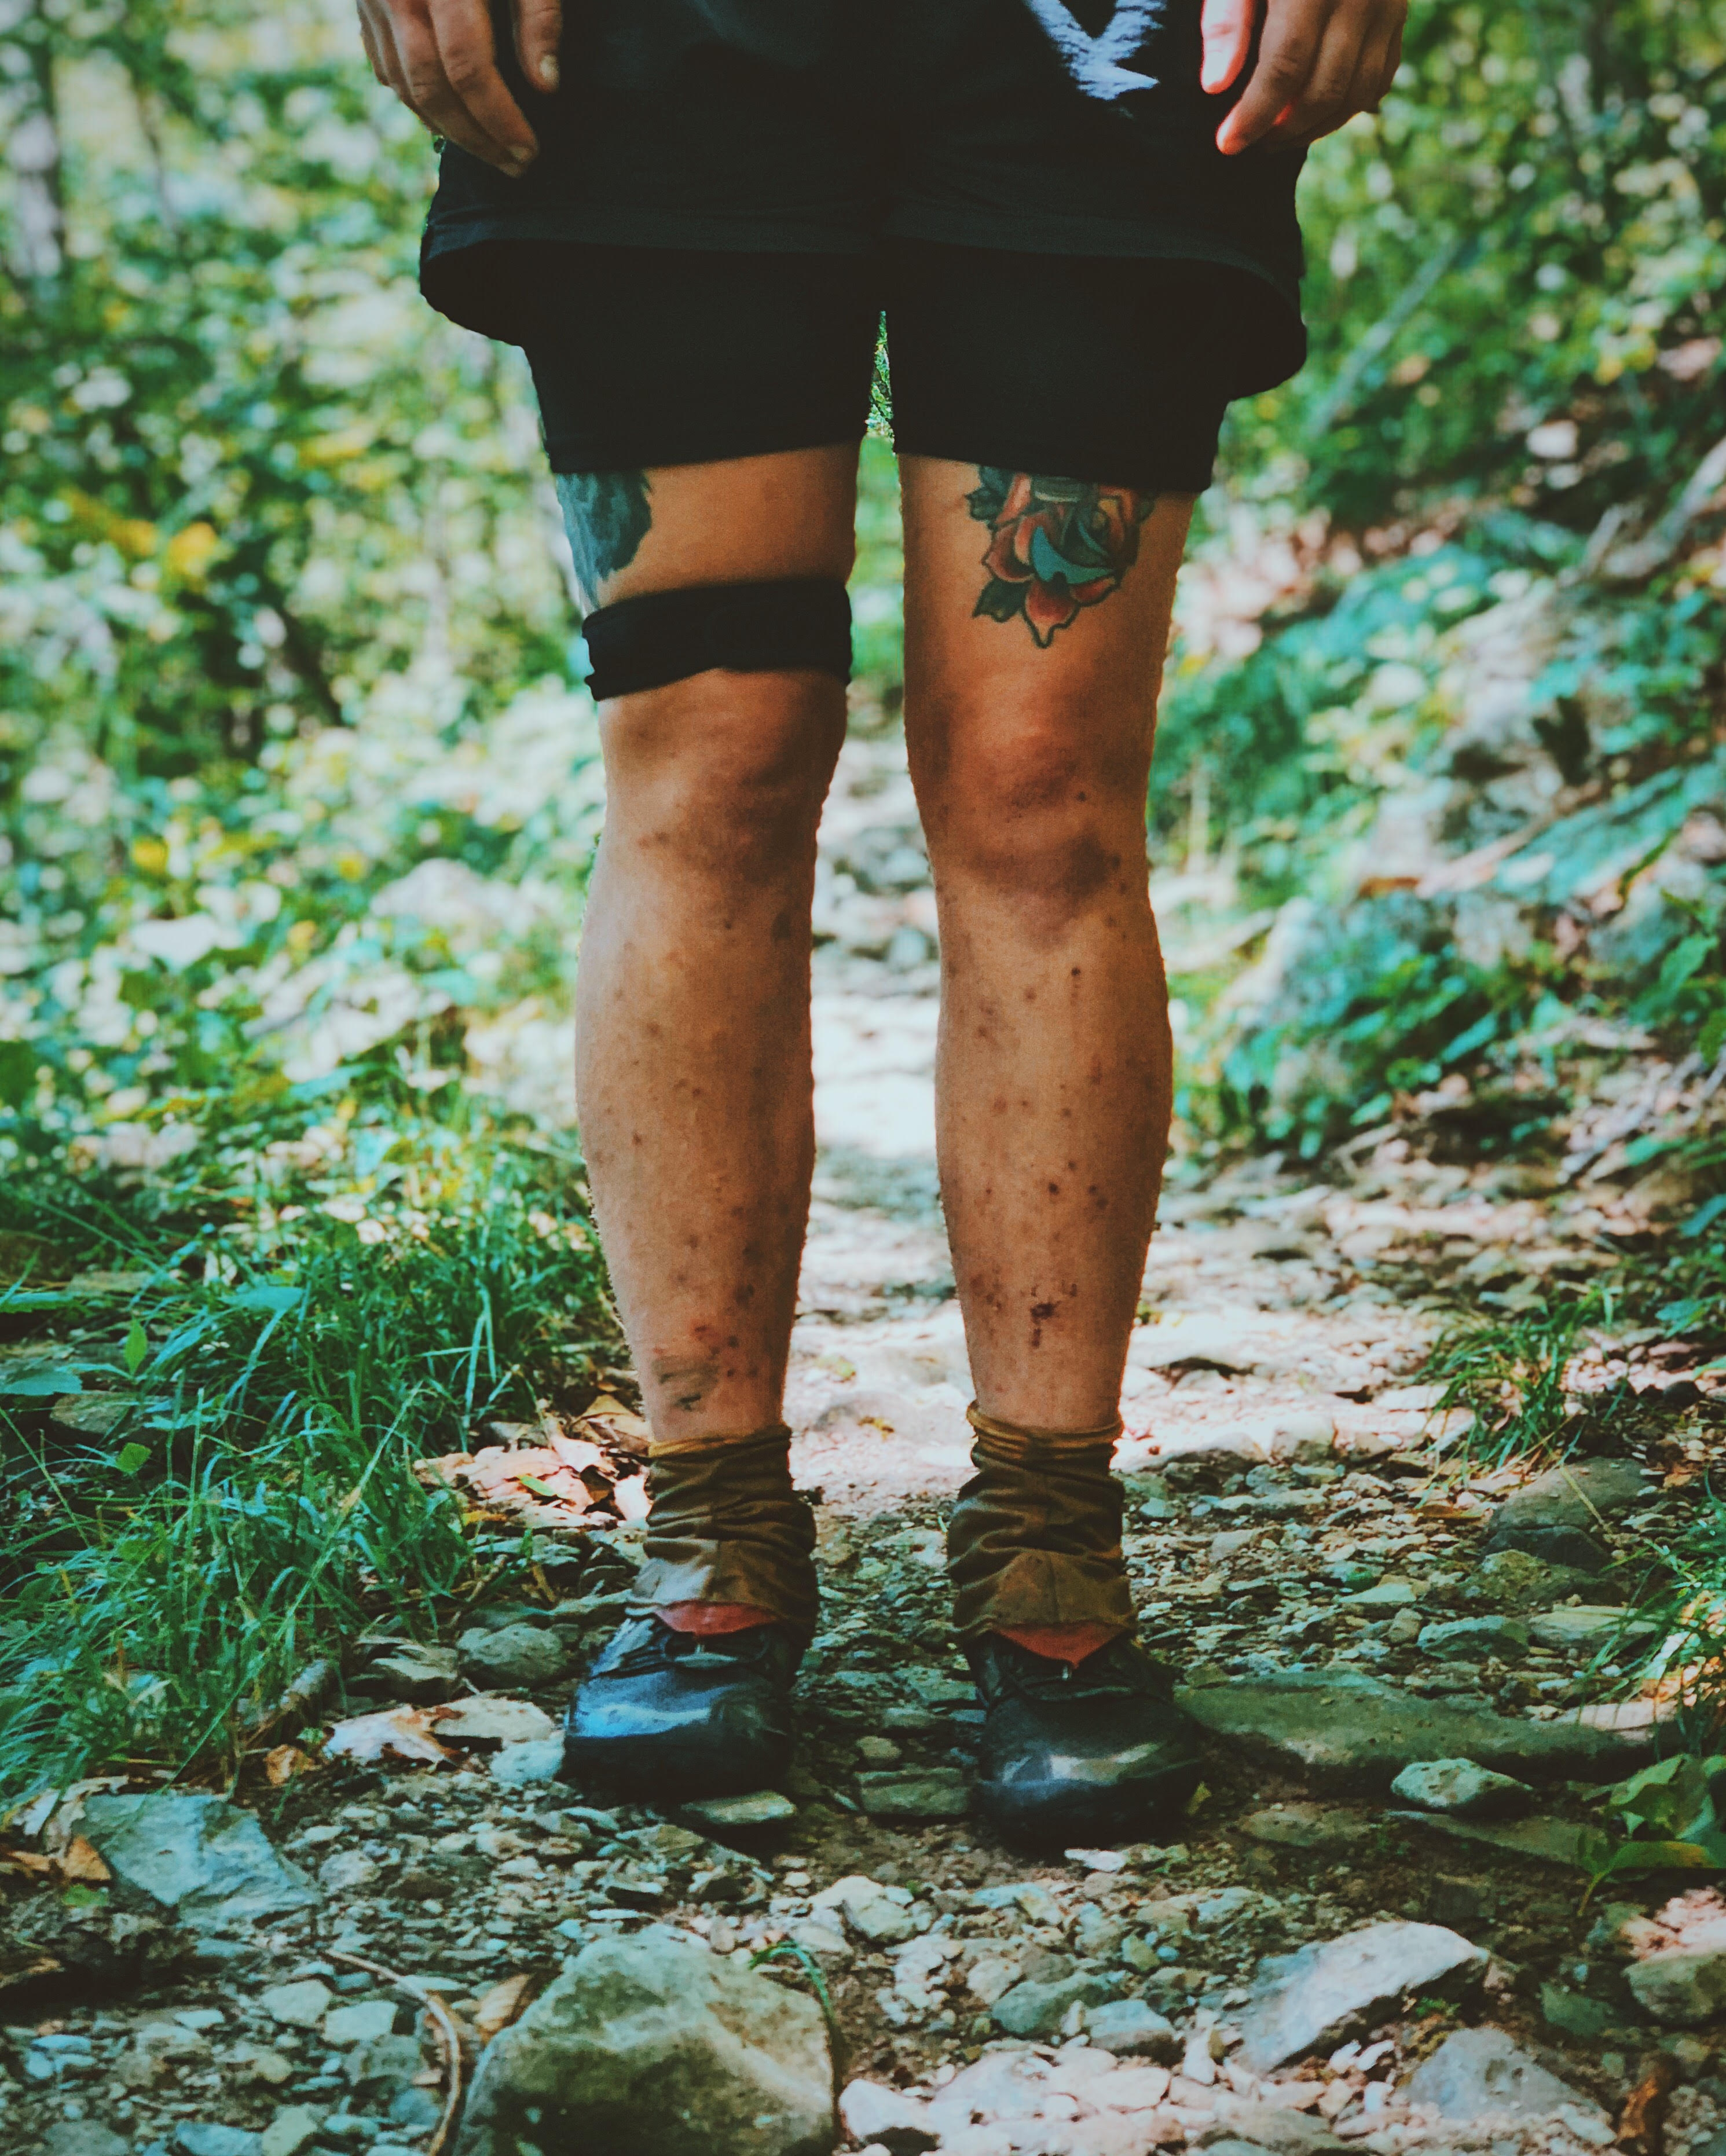 Thru-Hike in Barefoot Shoes